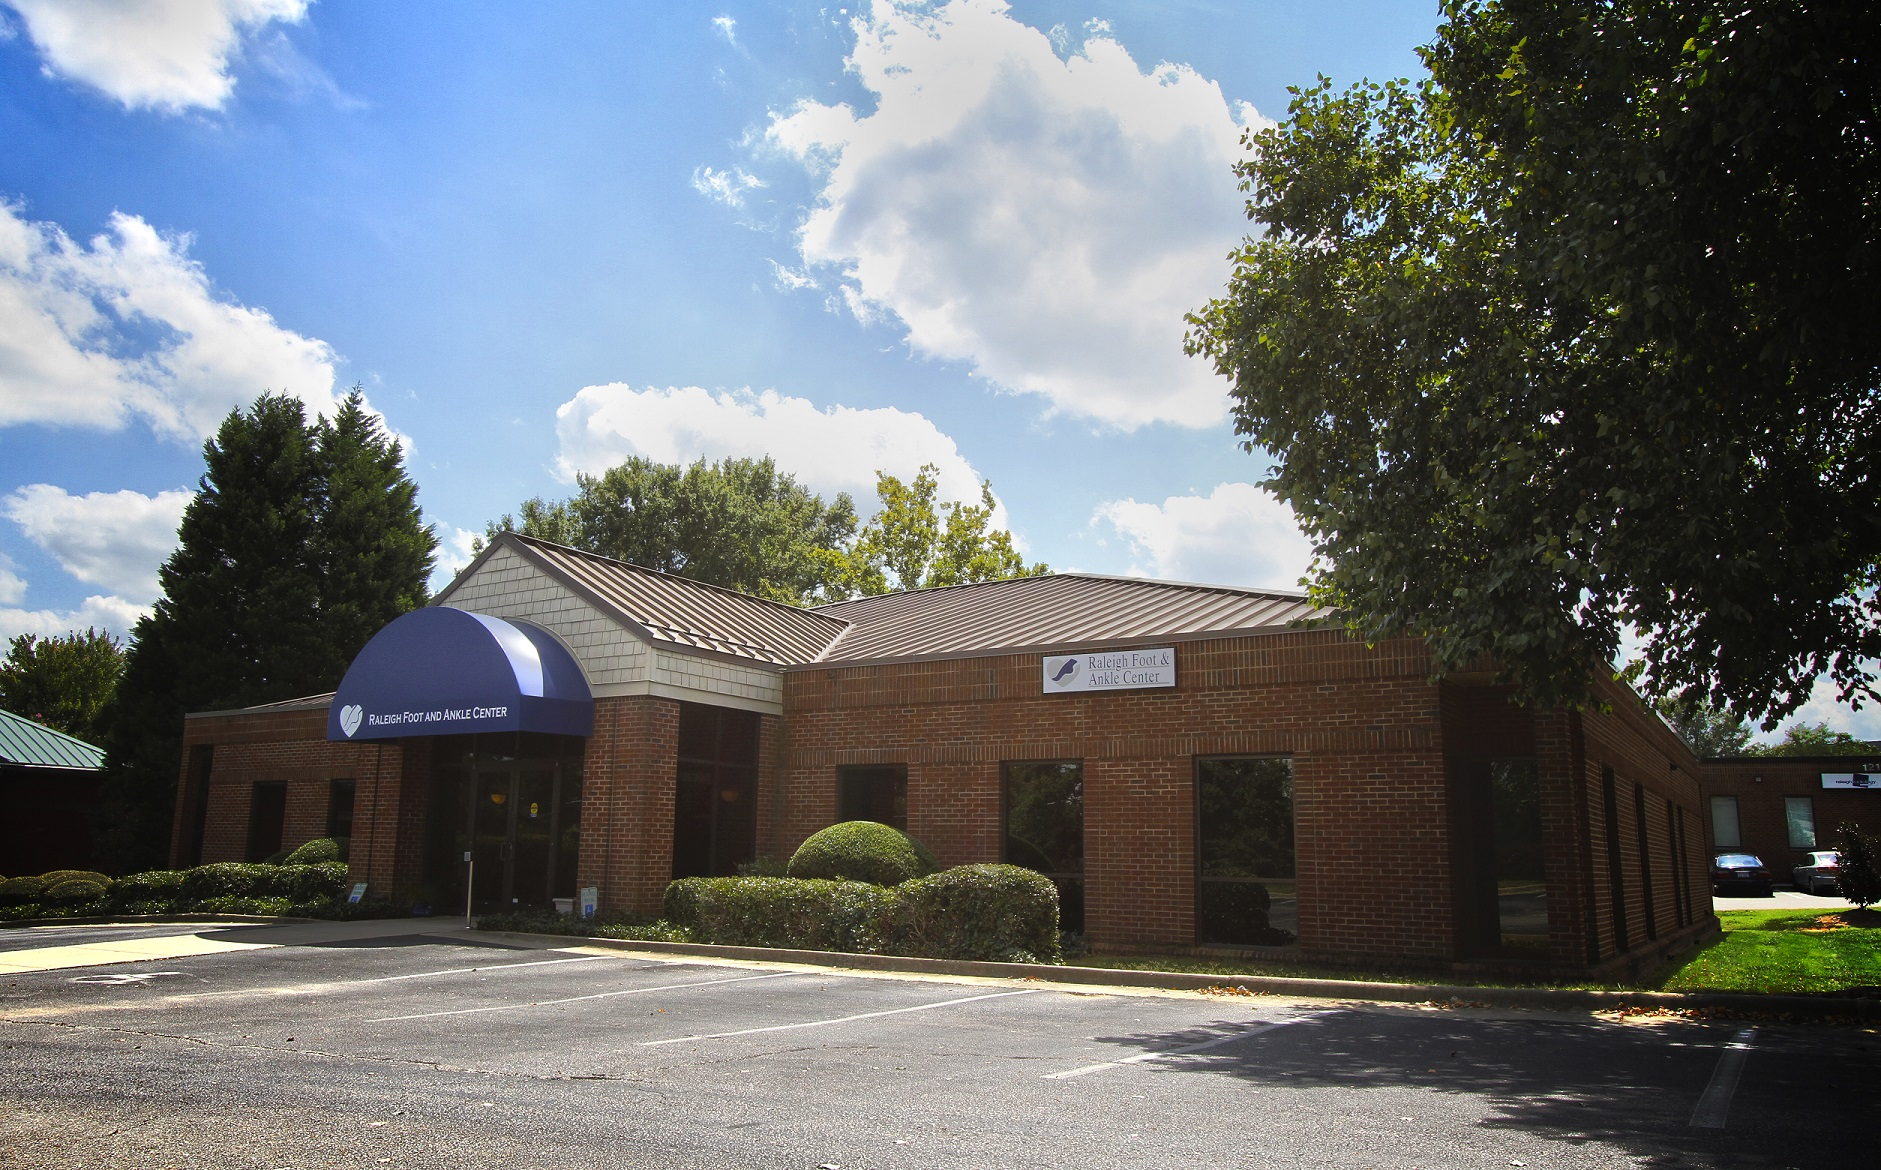 Millbrook office